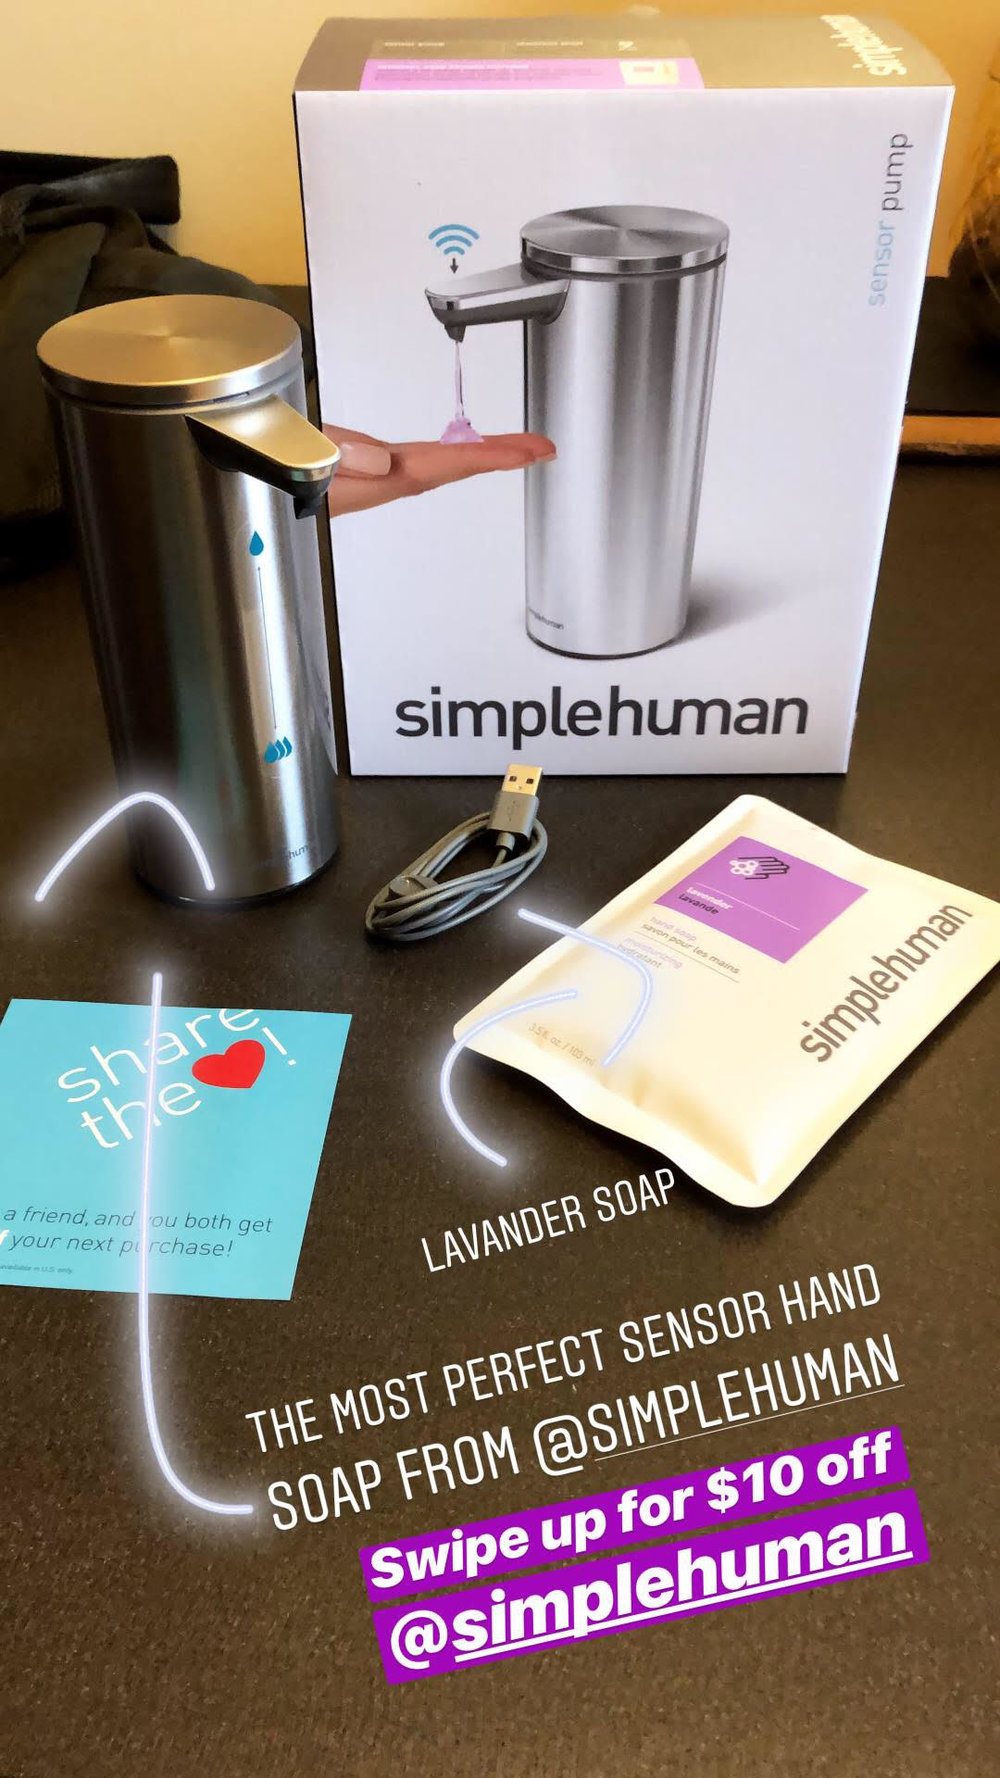 - CLICK HERE for 10% off simple human products!